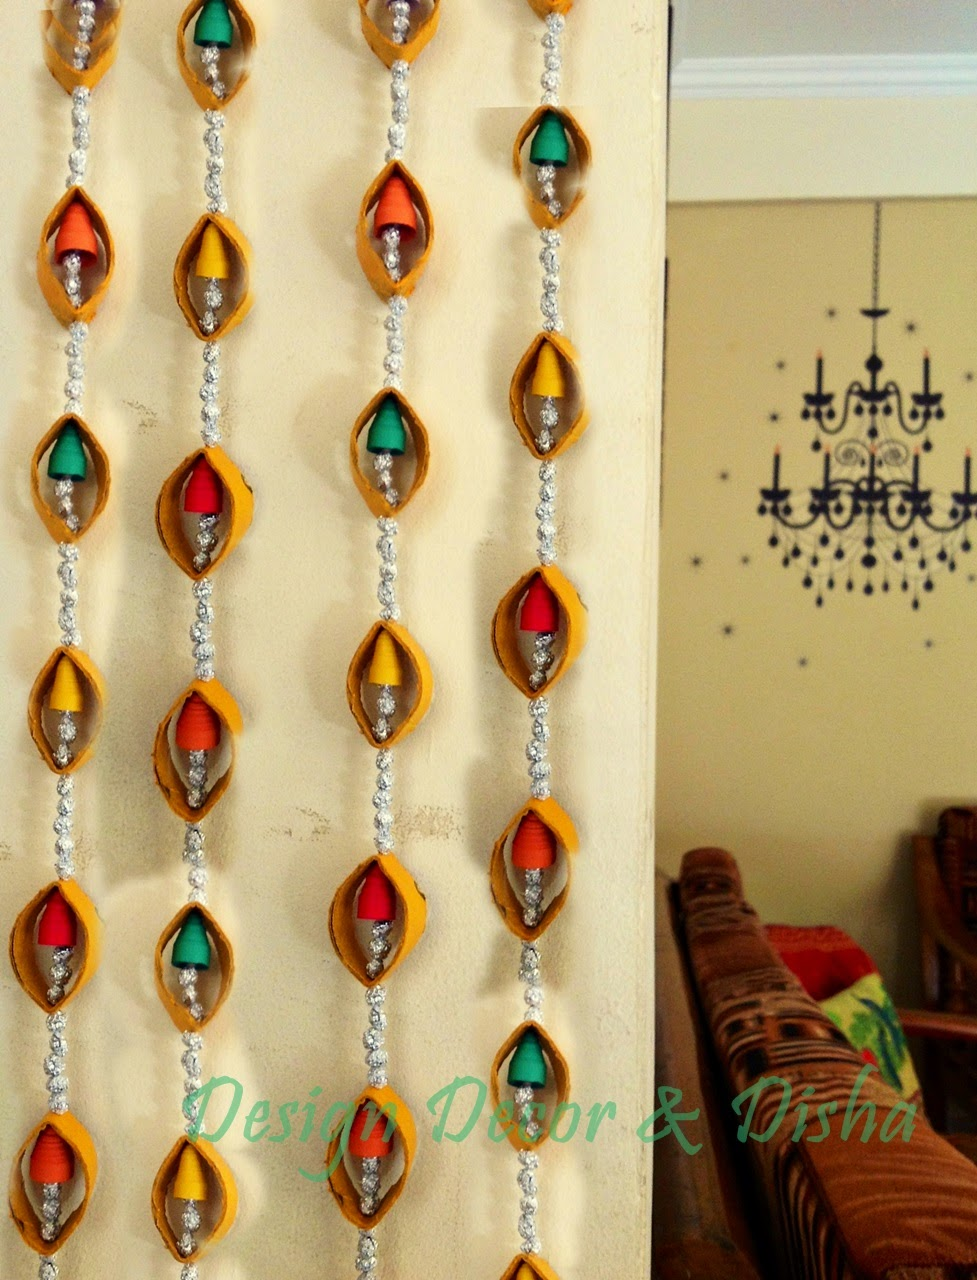 Design Decor & Disha | An Indian Design & Decor Blog: DIY